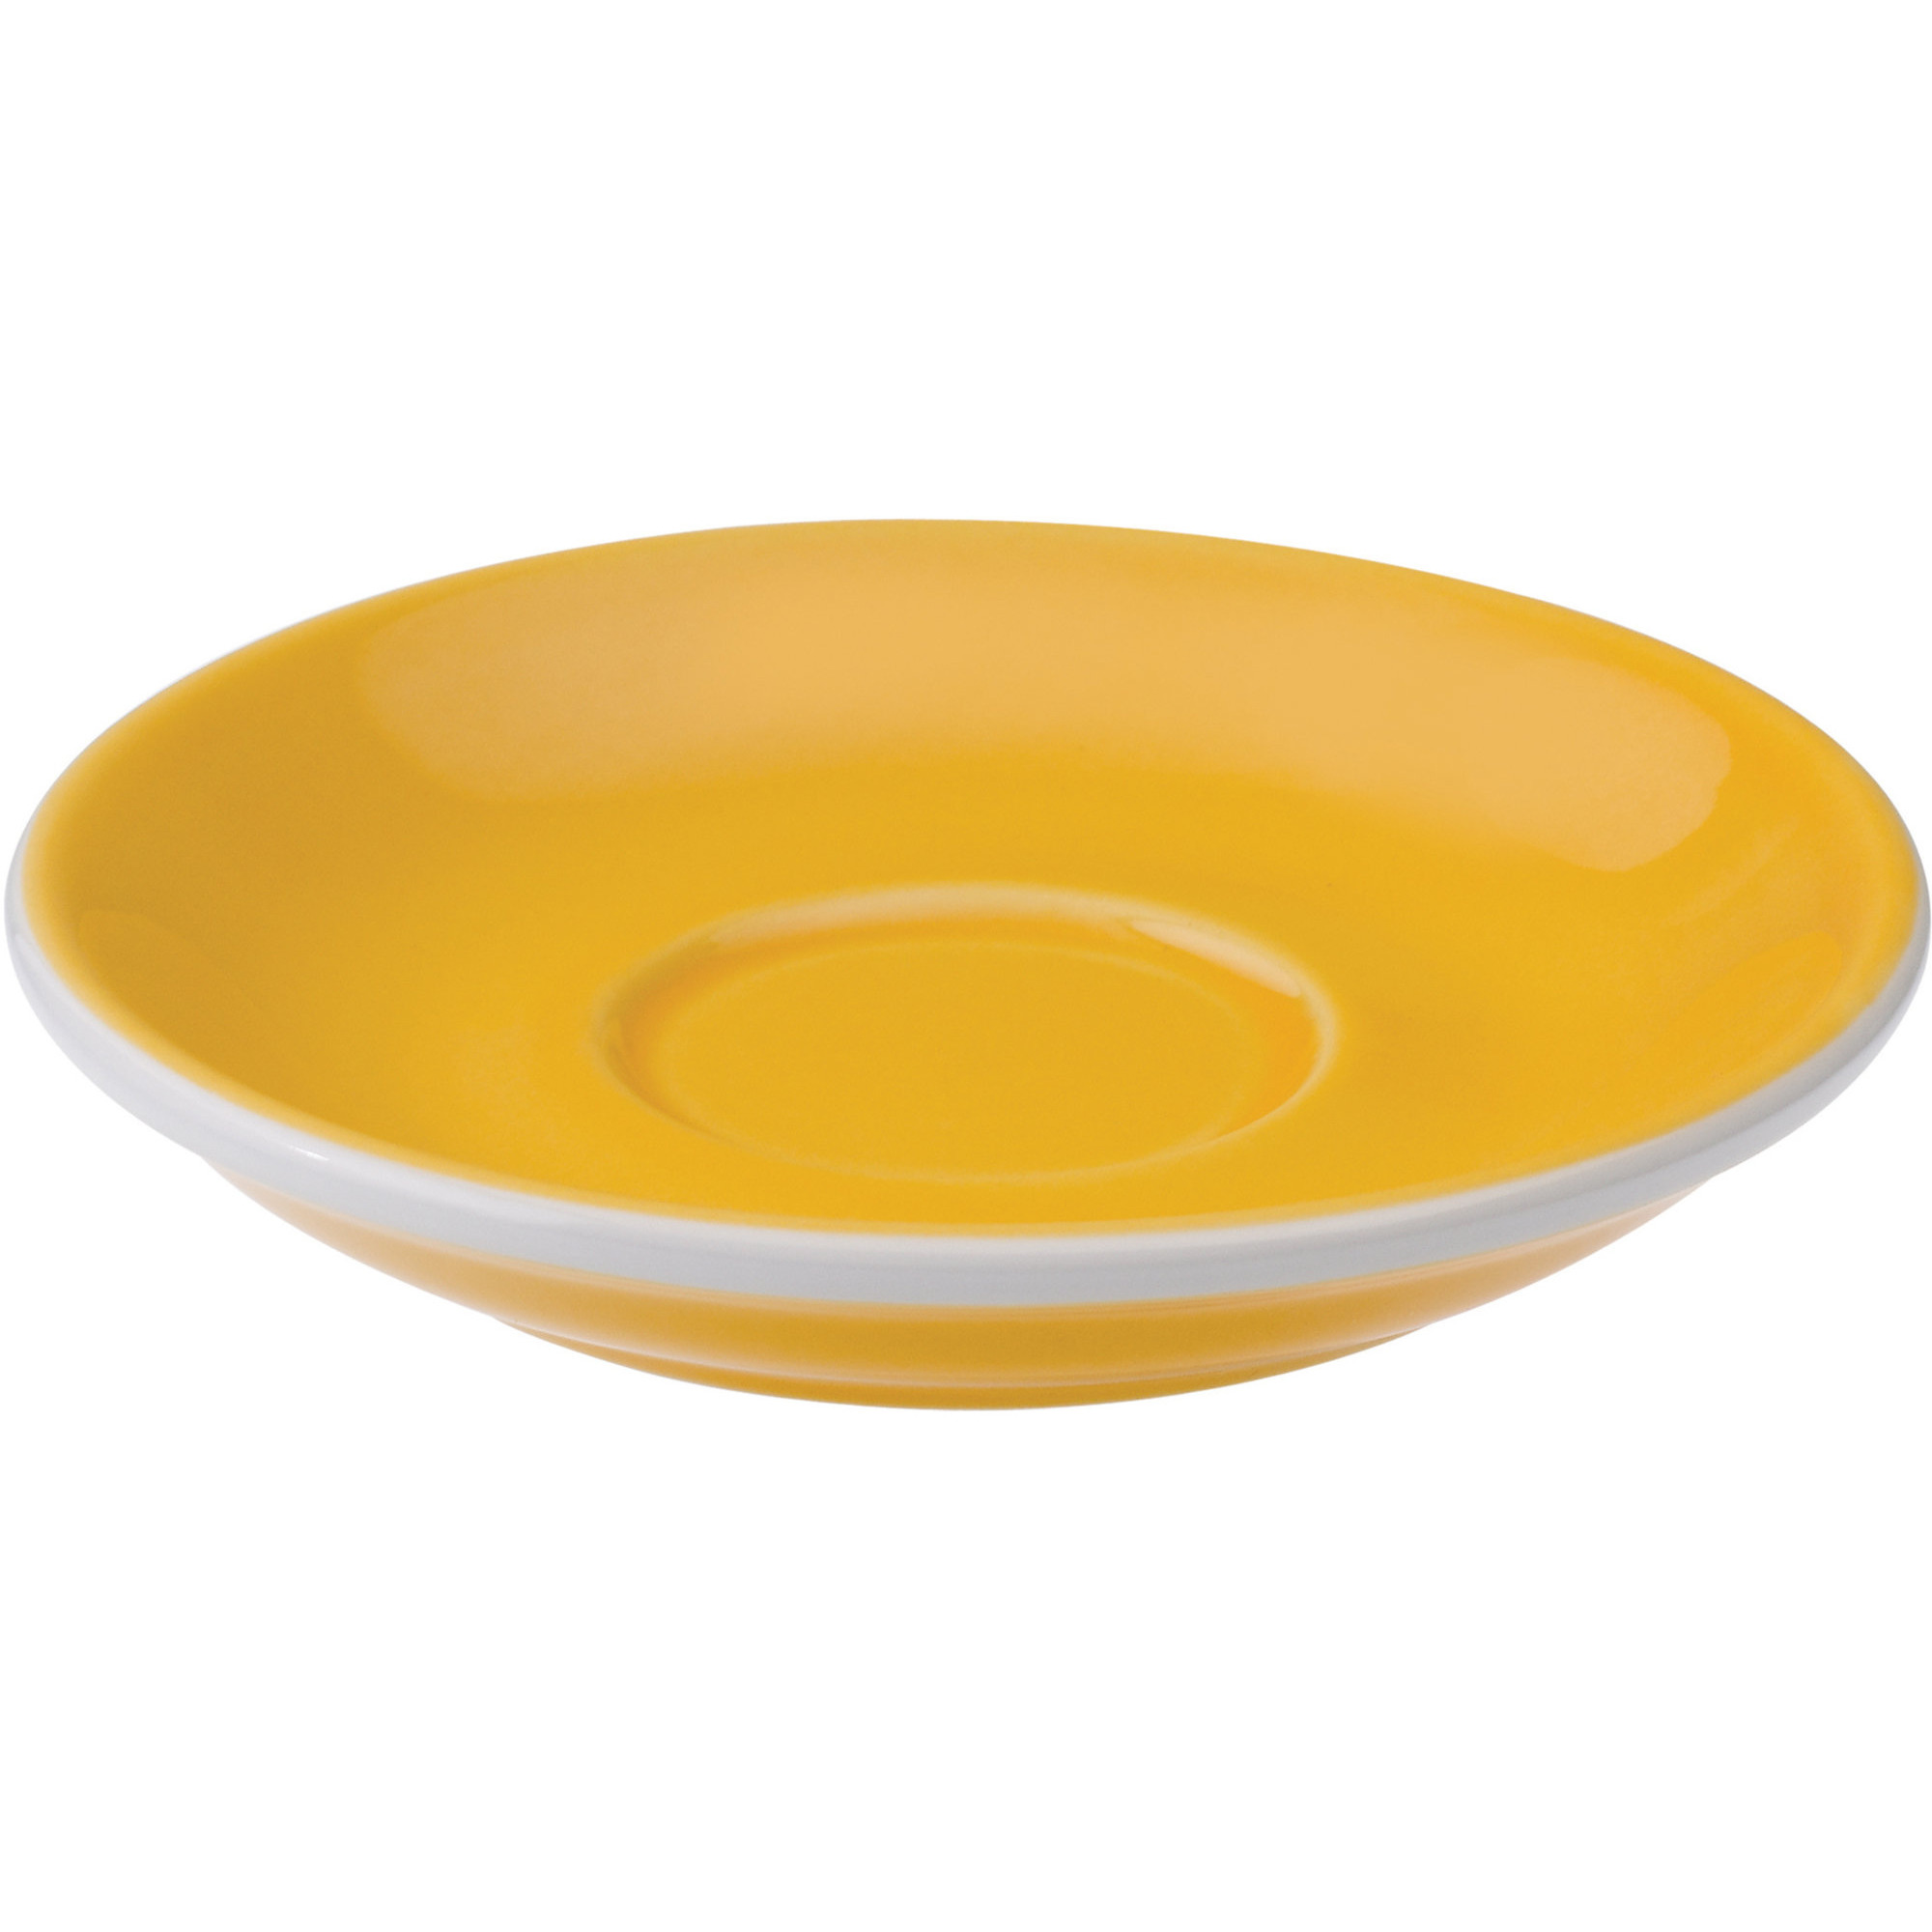 Loveramics Egg Espresso fat 11.5 cm. 6 st. Yellow